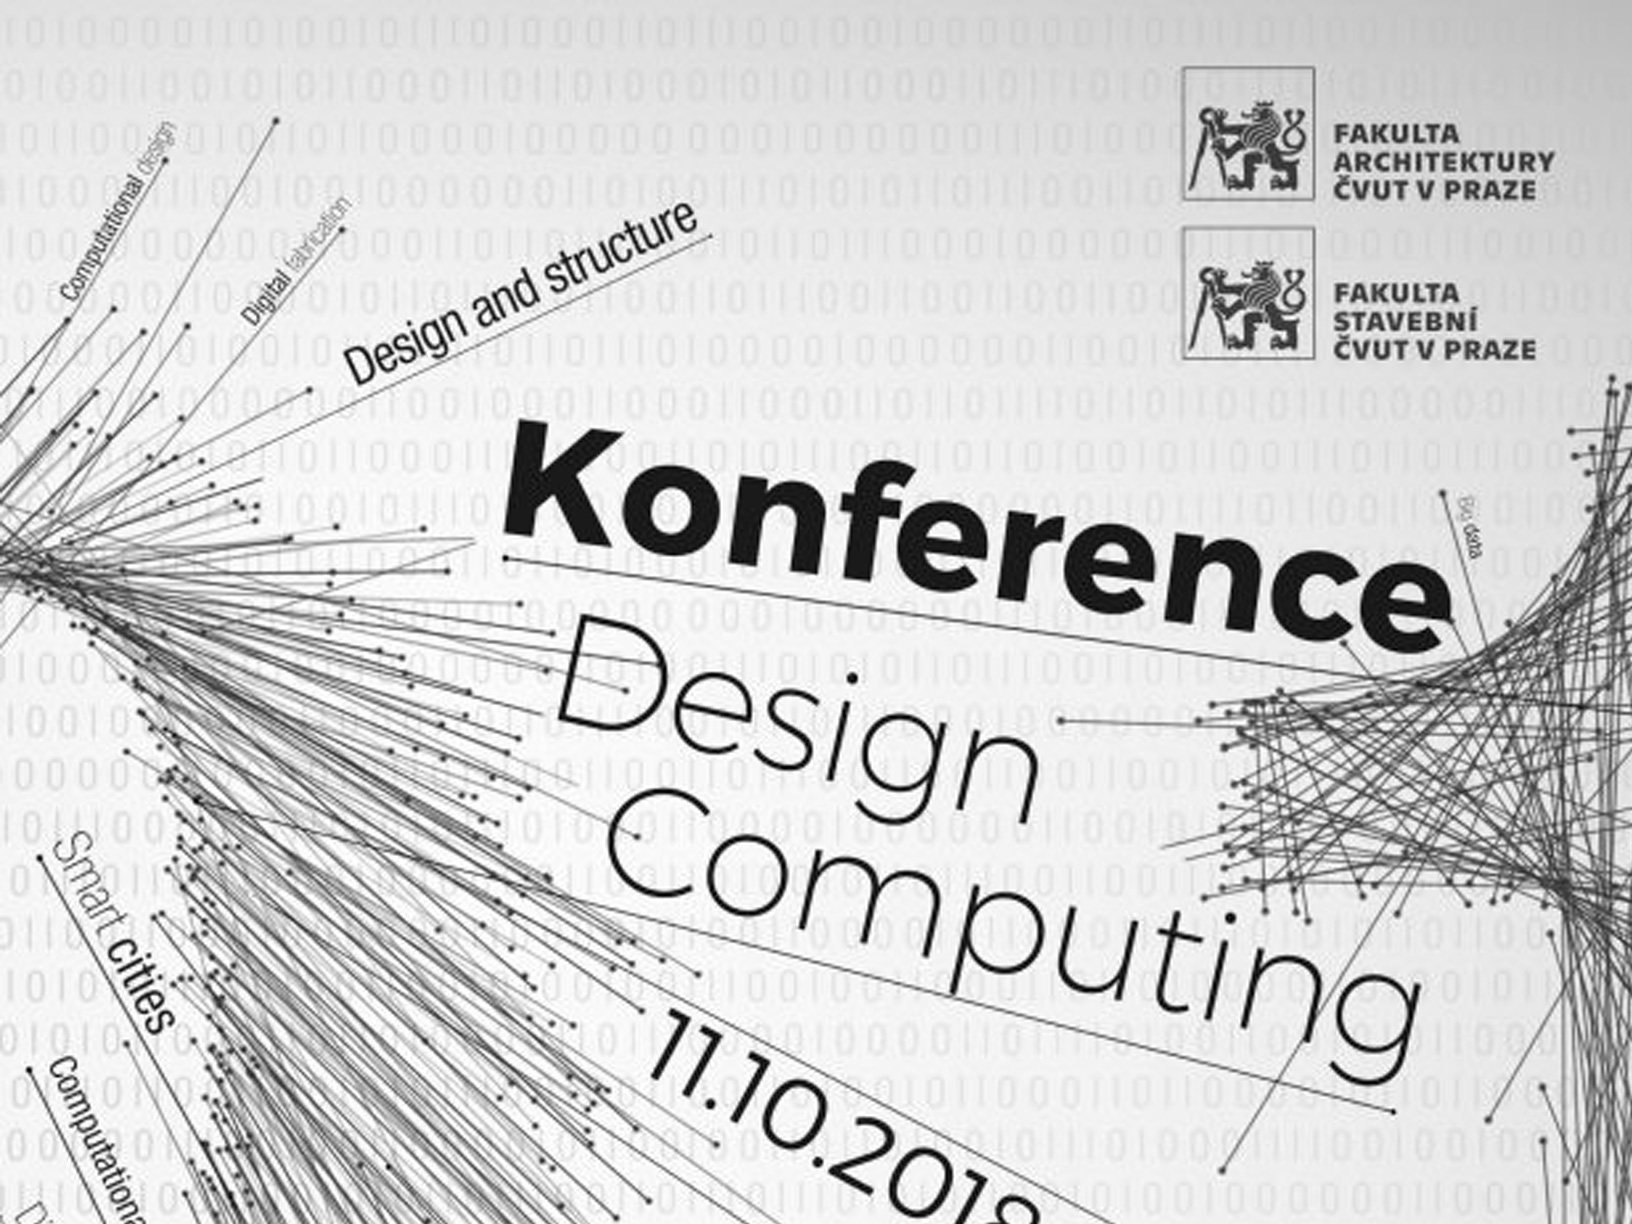 We are delighted to have been invited to contribute to the exhibition and conference on Design Computing by Professor Henri Achten, exhibiting our Sense IV project in the Czech capital.